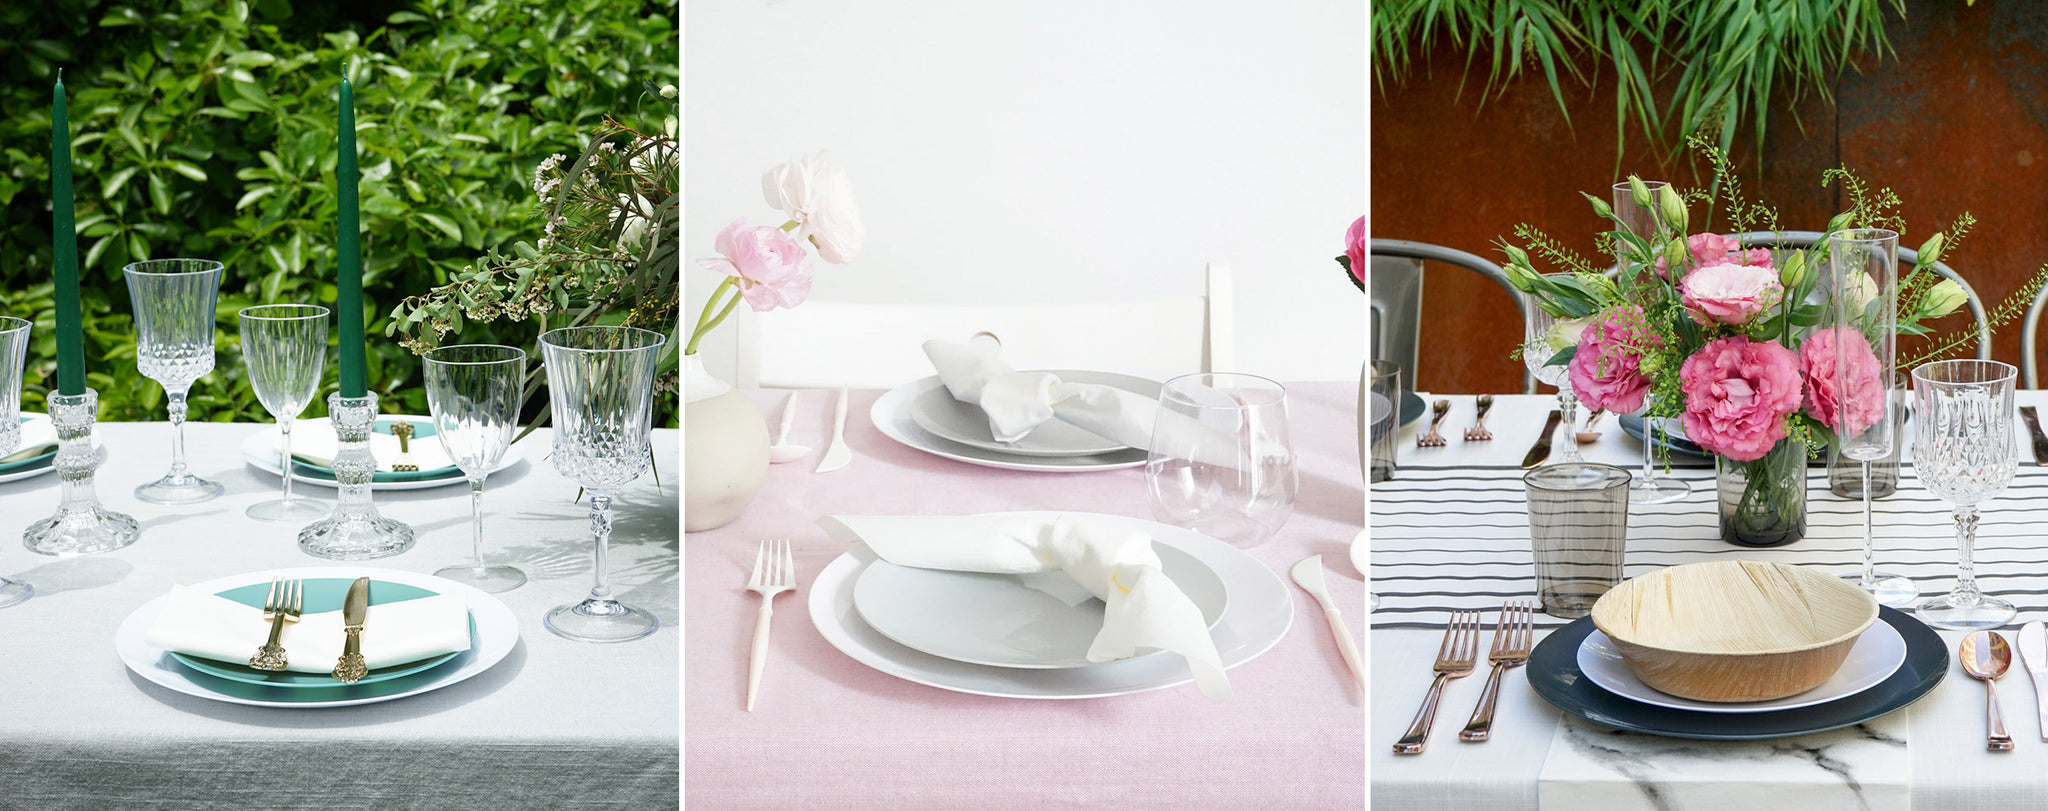 lentramise-wedding-plastic-tableware-plates-recyclable